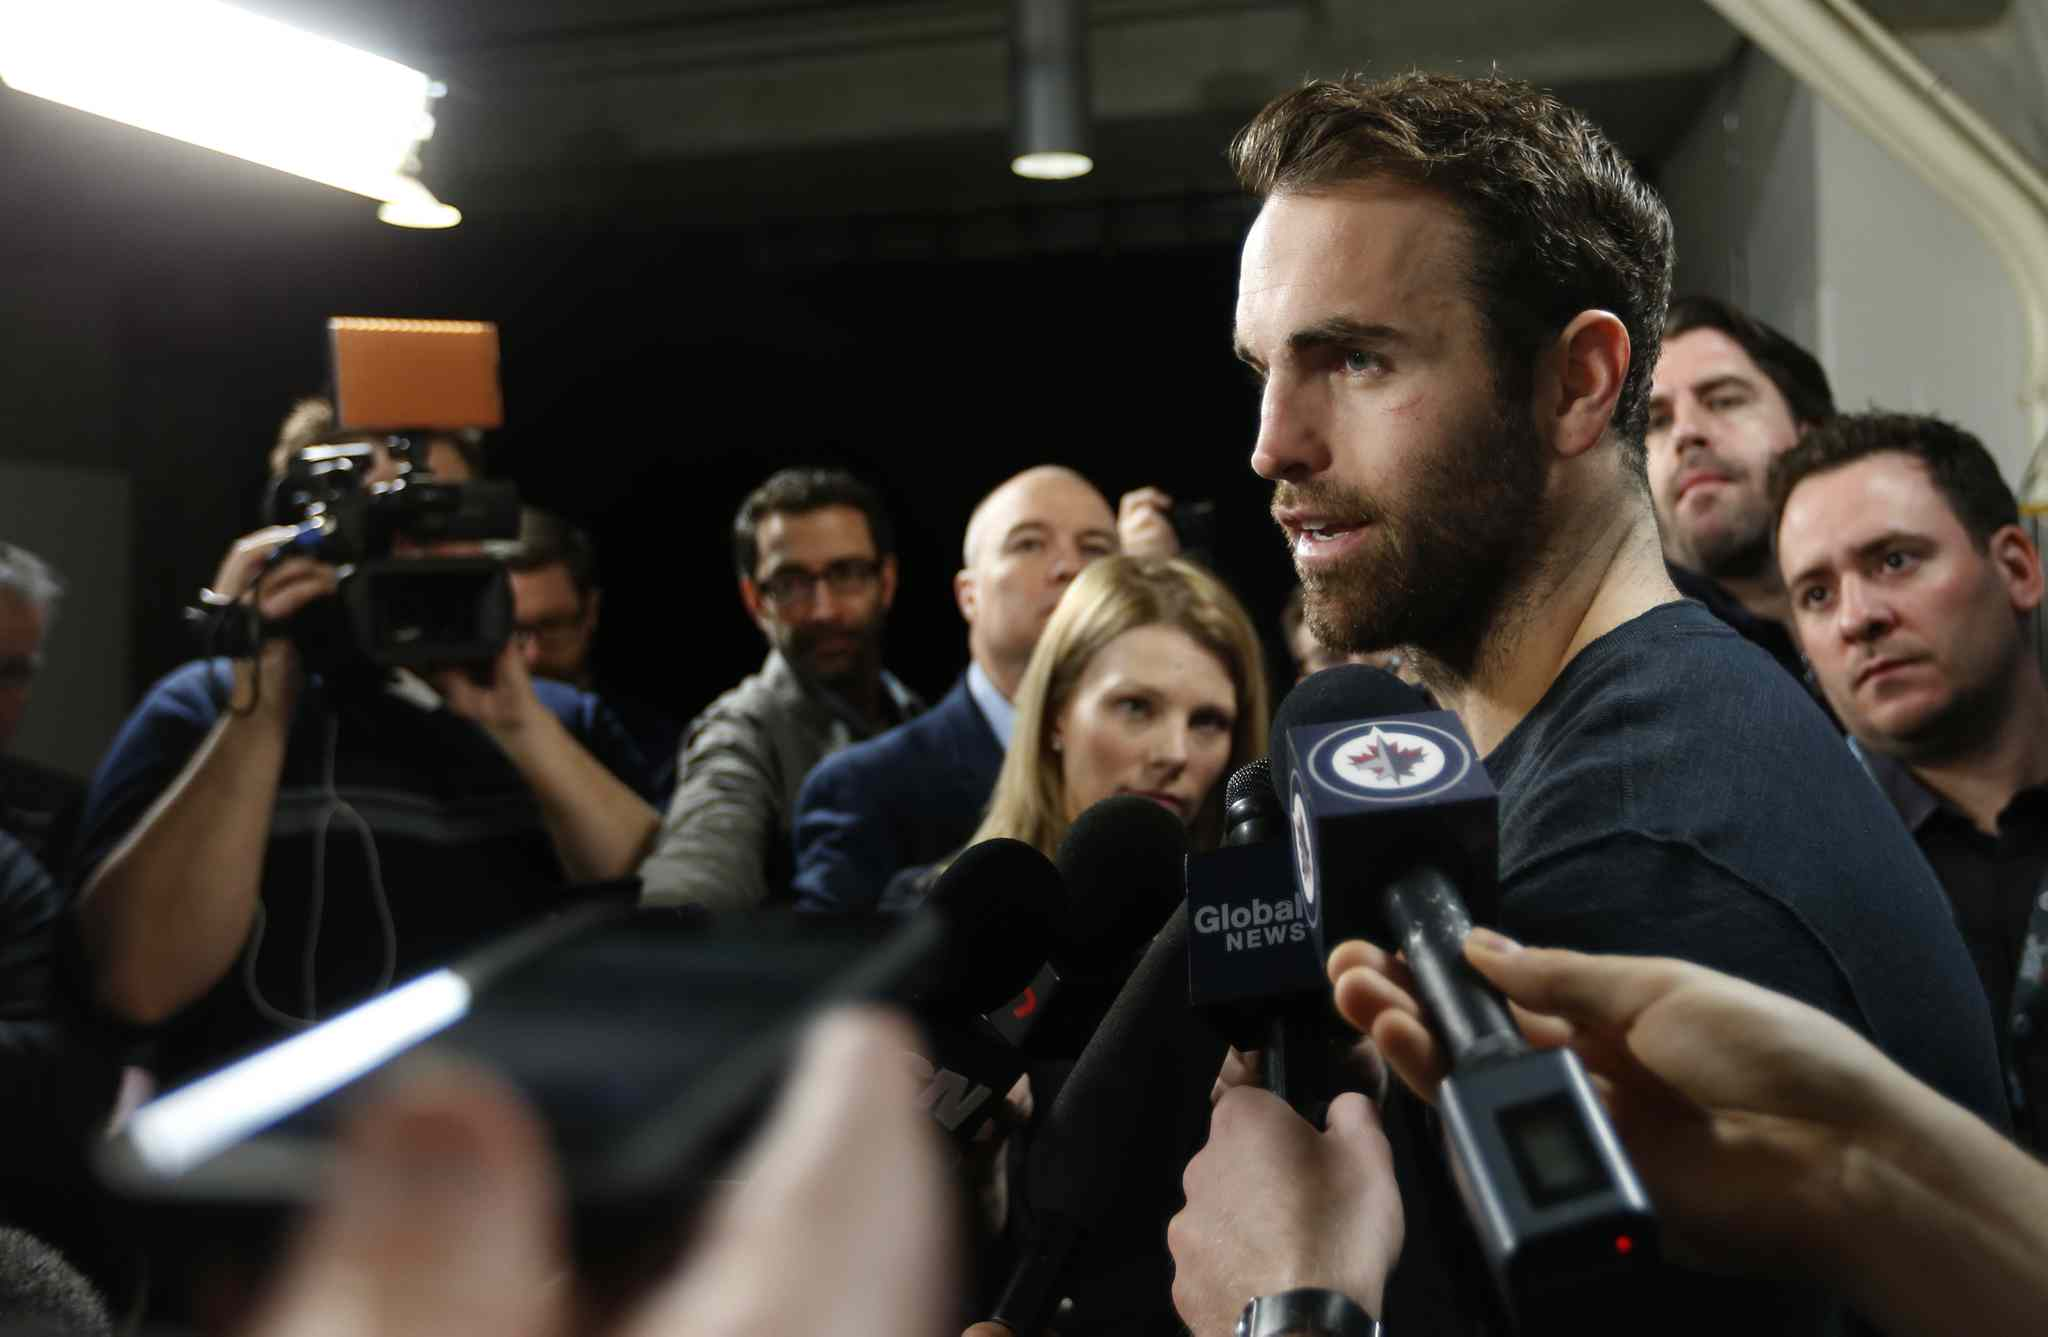 'Does it (his comments) surprise me? No, I think he's an emotional kid. No, I guess it doesn't,' Andrew Ladd said today of Evander Kane's remarks in an article in The Hockey News.